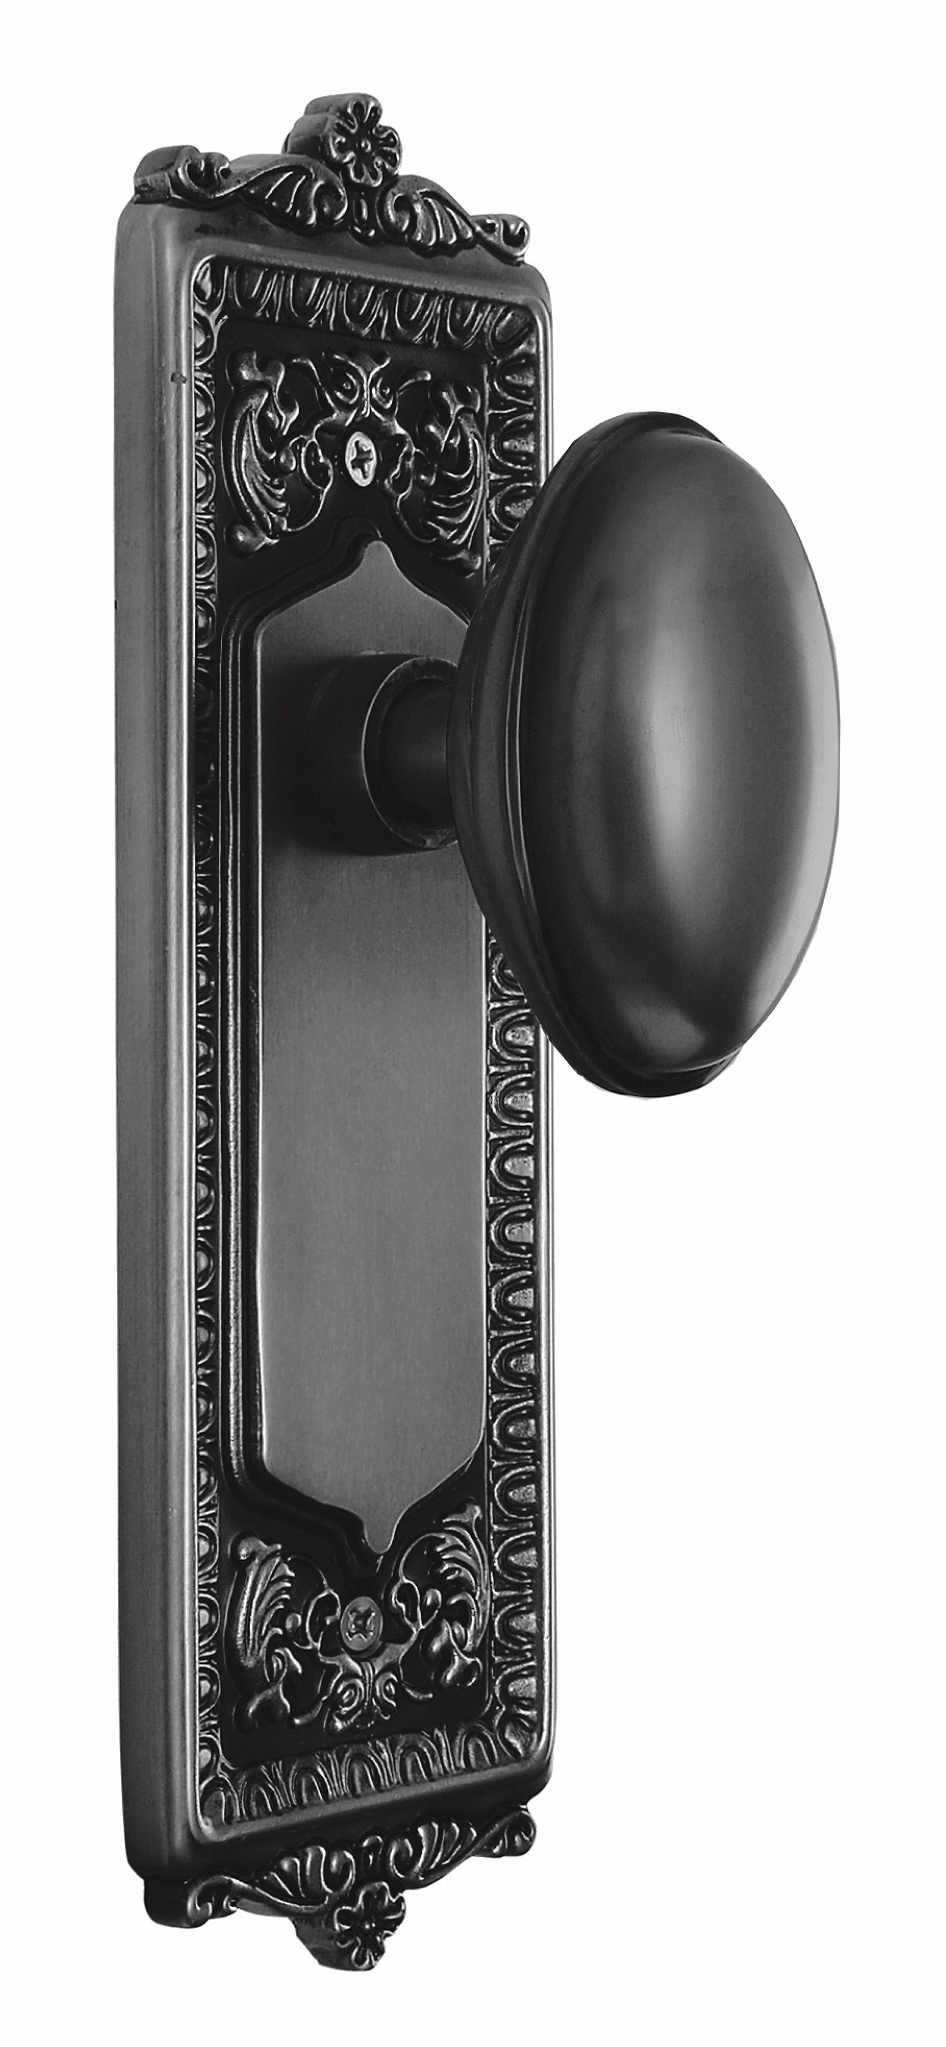 Egg and Dart Backplate and Homestead Knob, Passage, Oil Rubbed Bronze